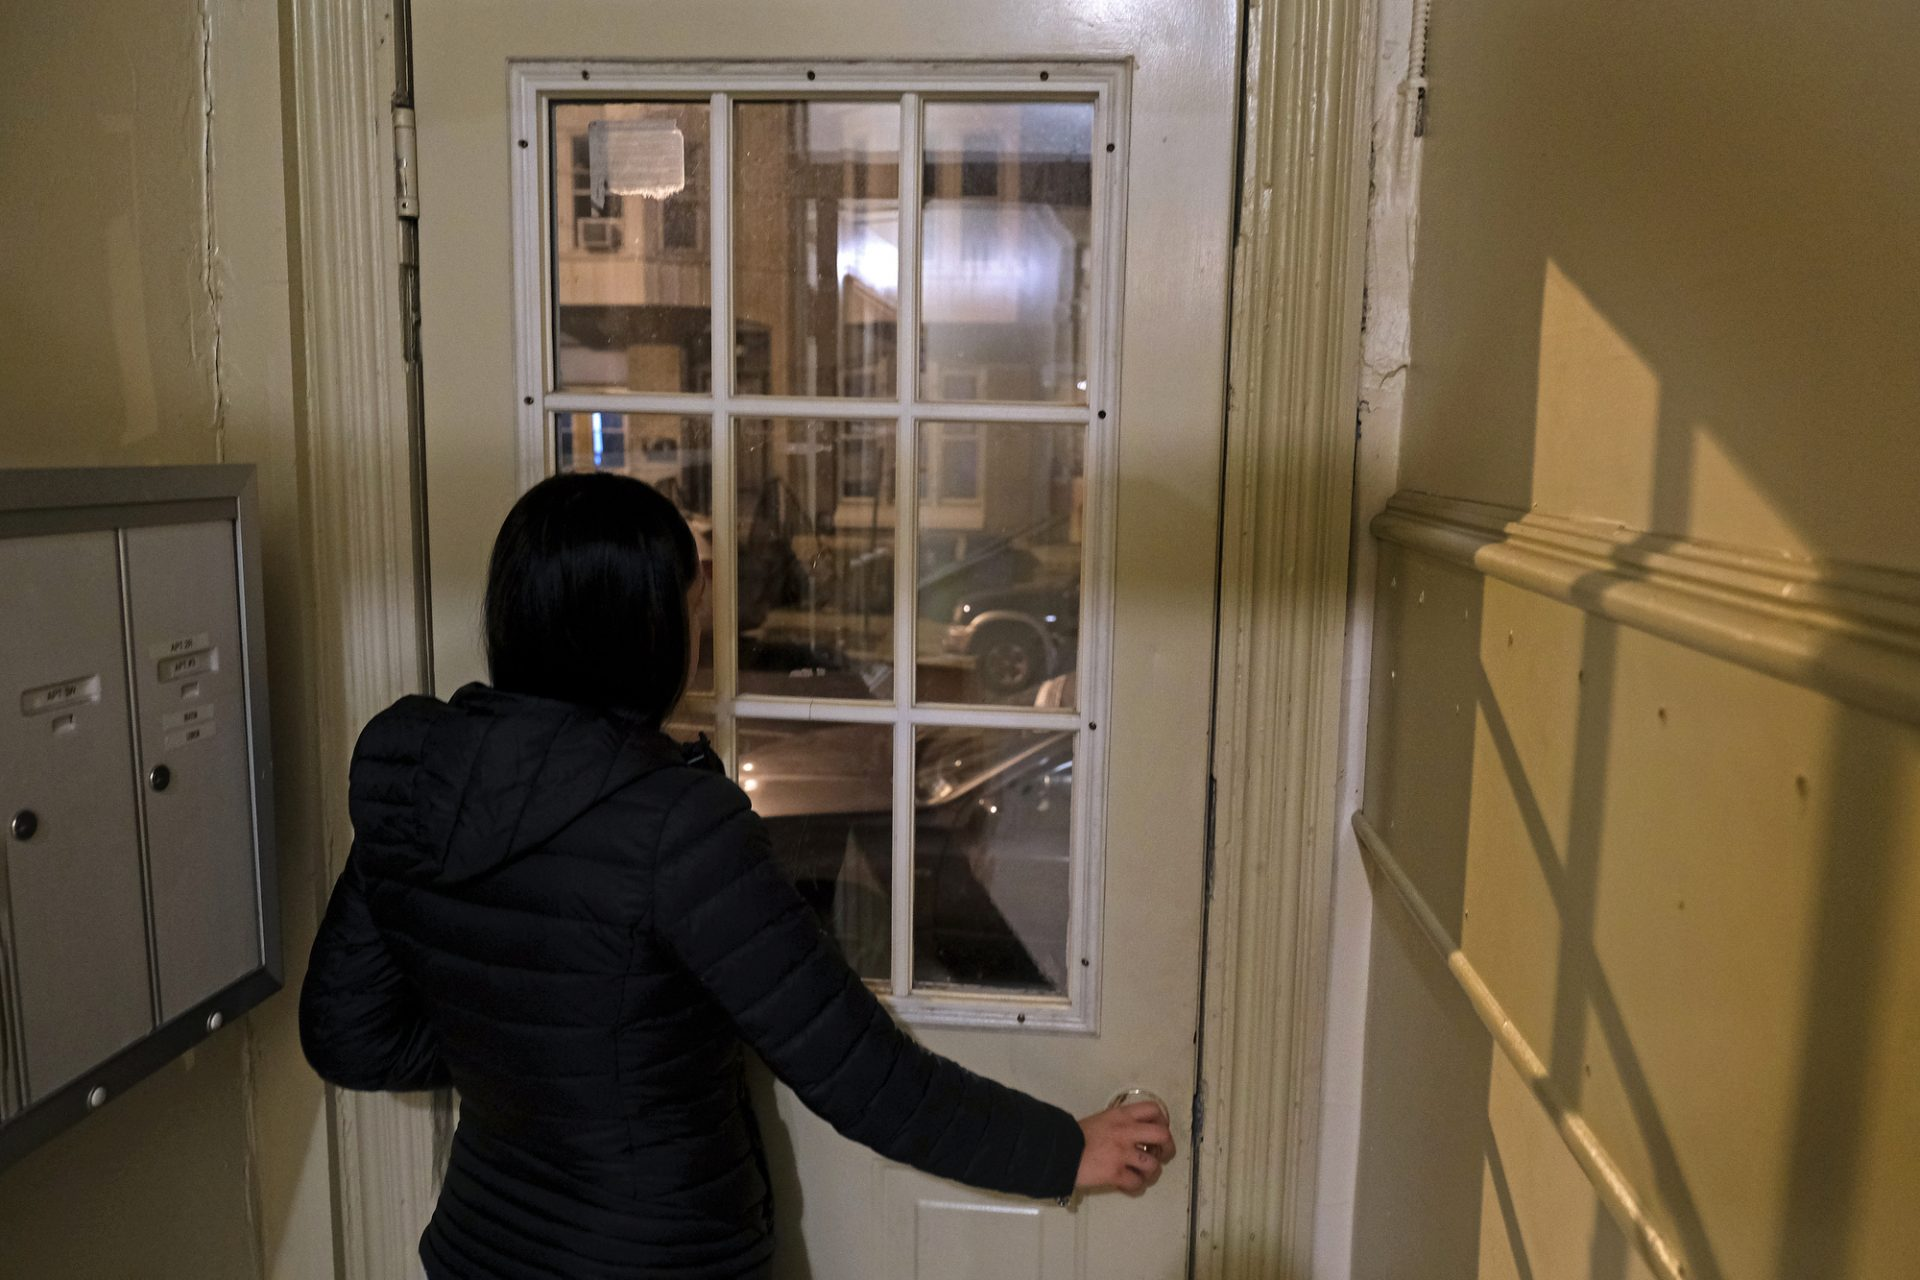 A woman who had been evicted several times stands in the doorway of her current residence Nov. 20, 2019, in Reading, Pennsylvania.